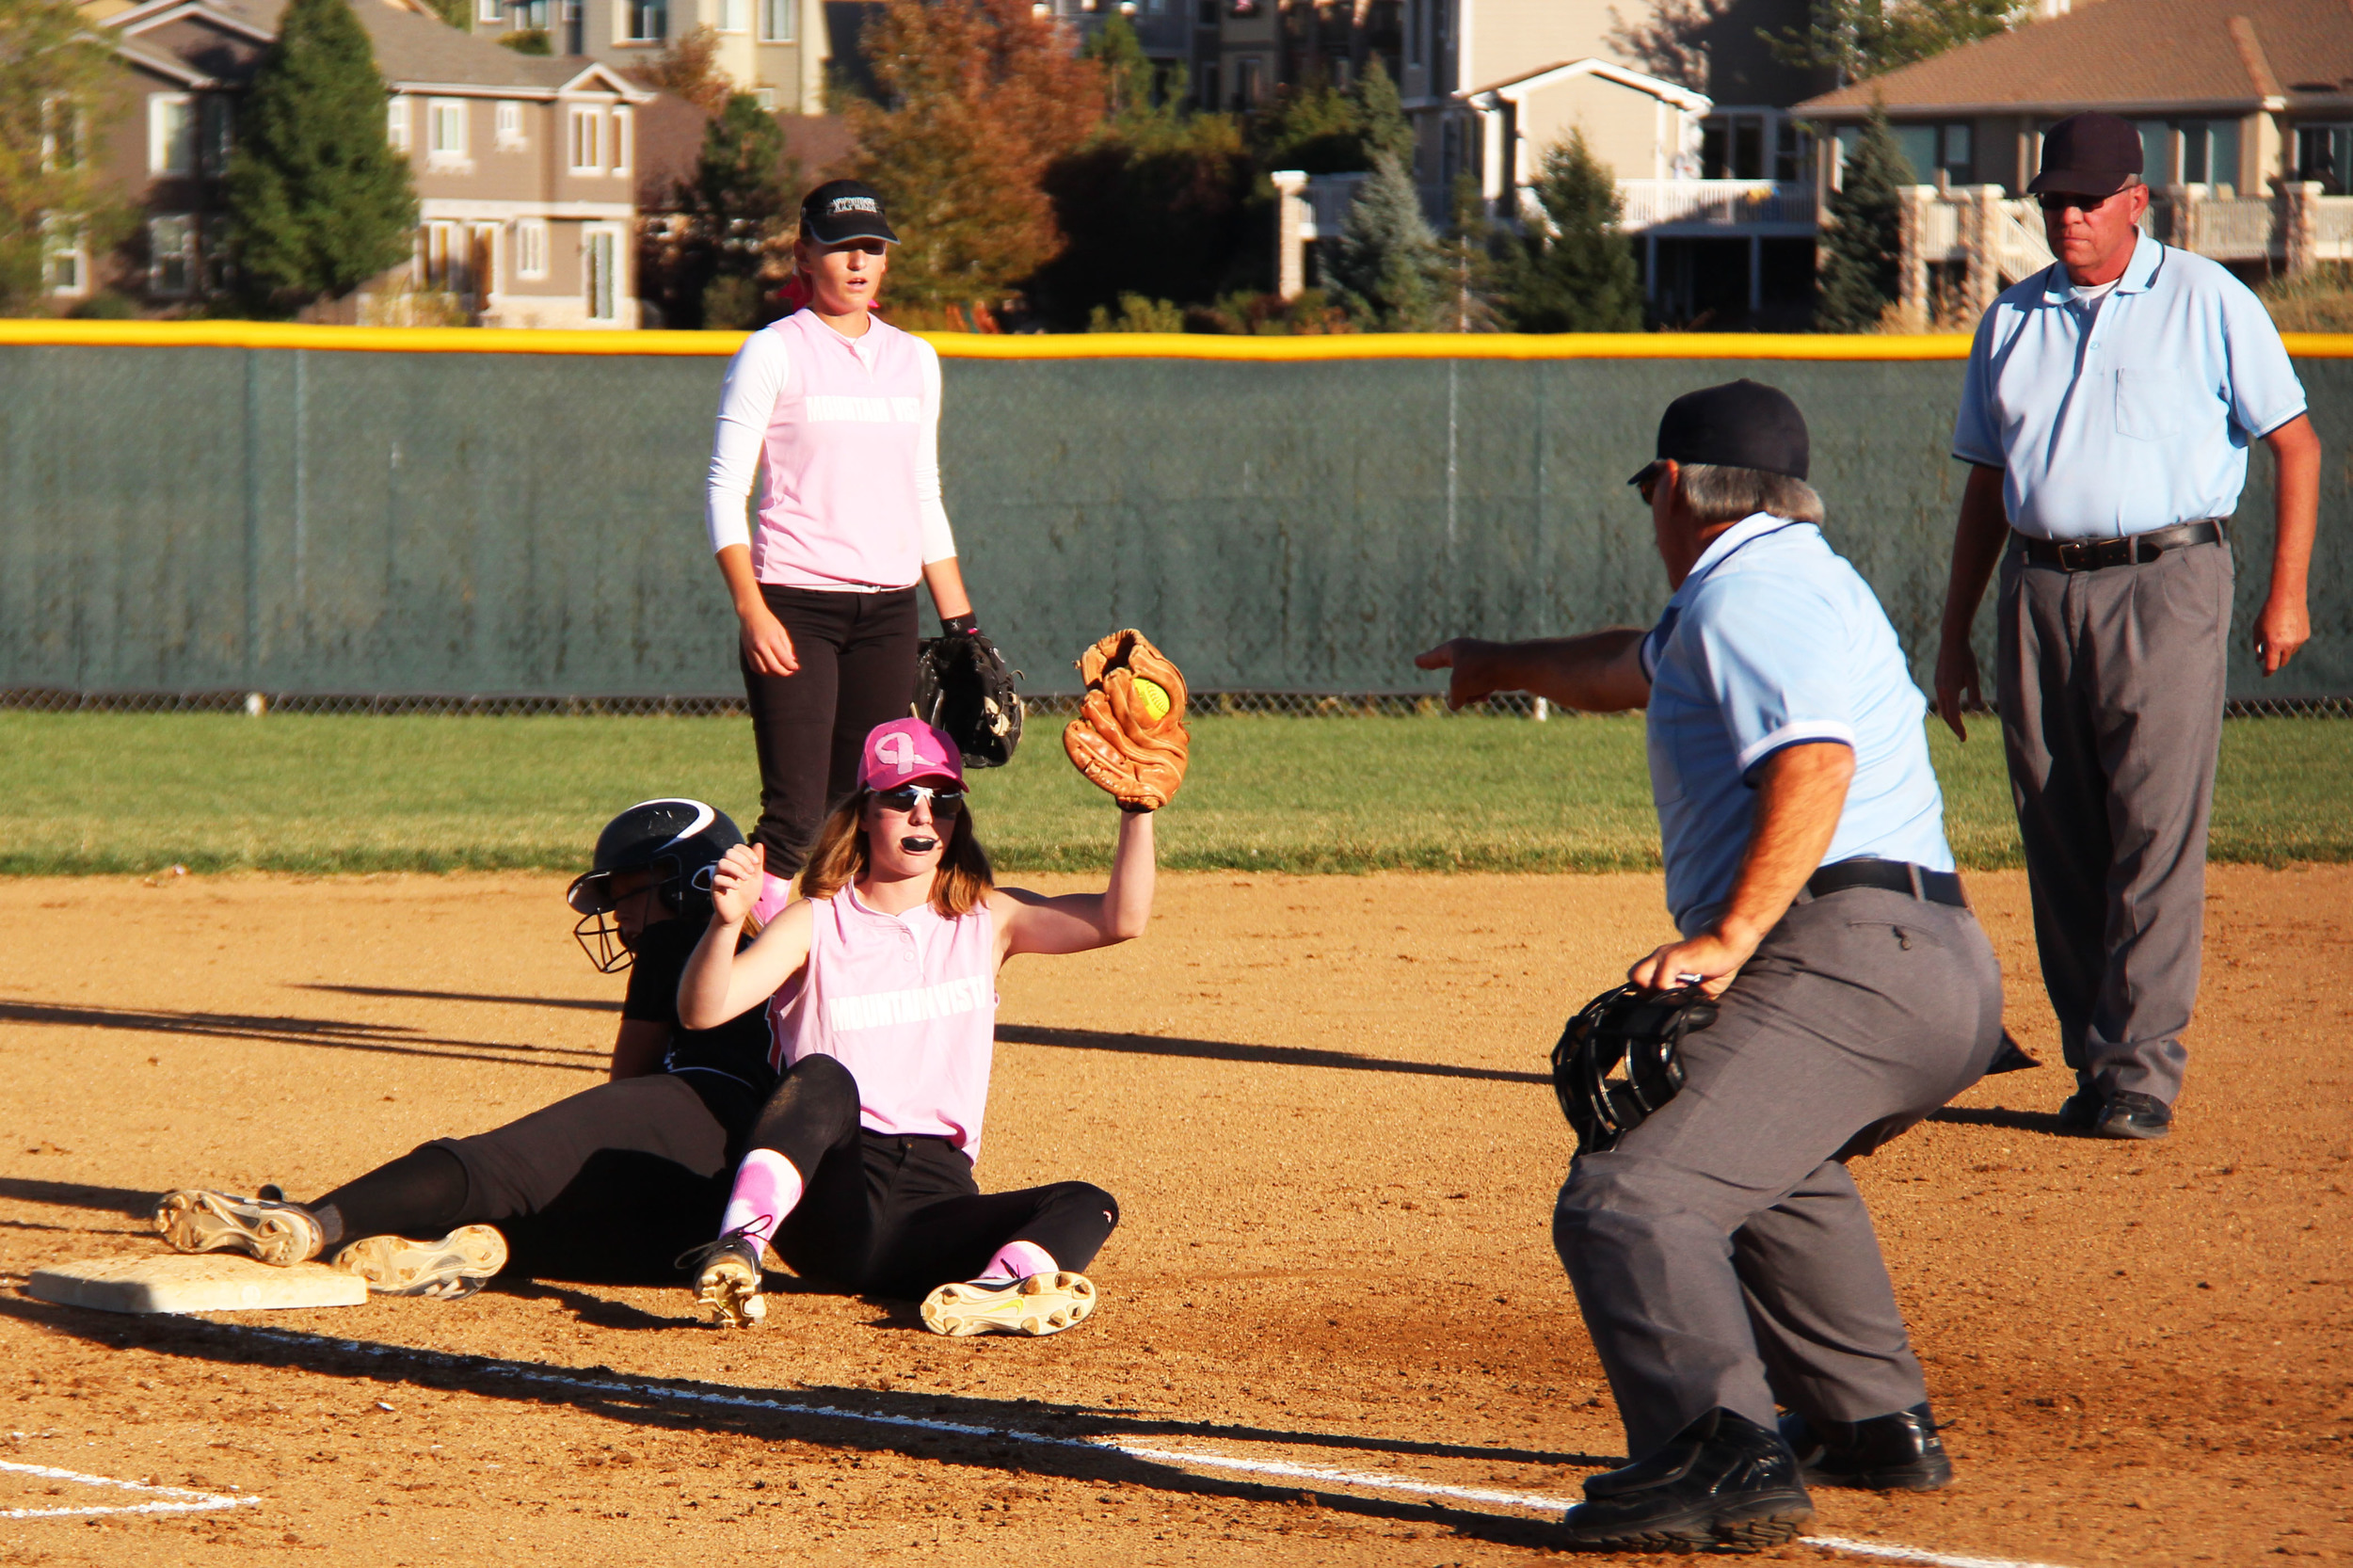 Sophomore Kyla Dezell holds up her glove as proof of possession after tagging a runner out.